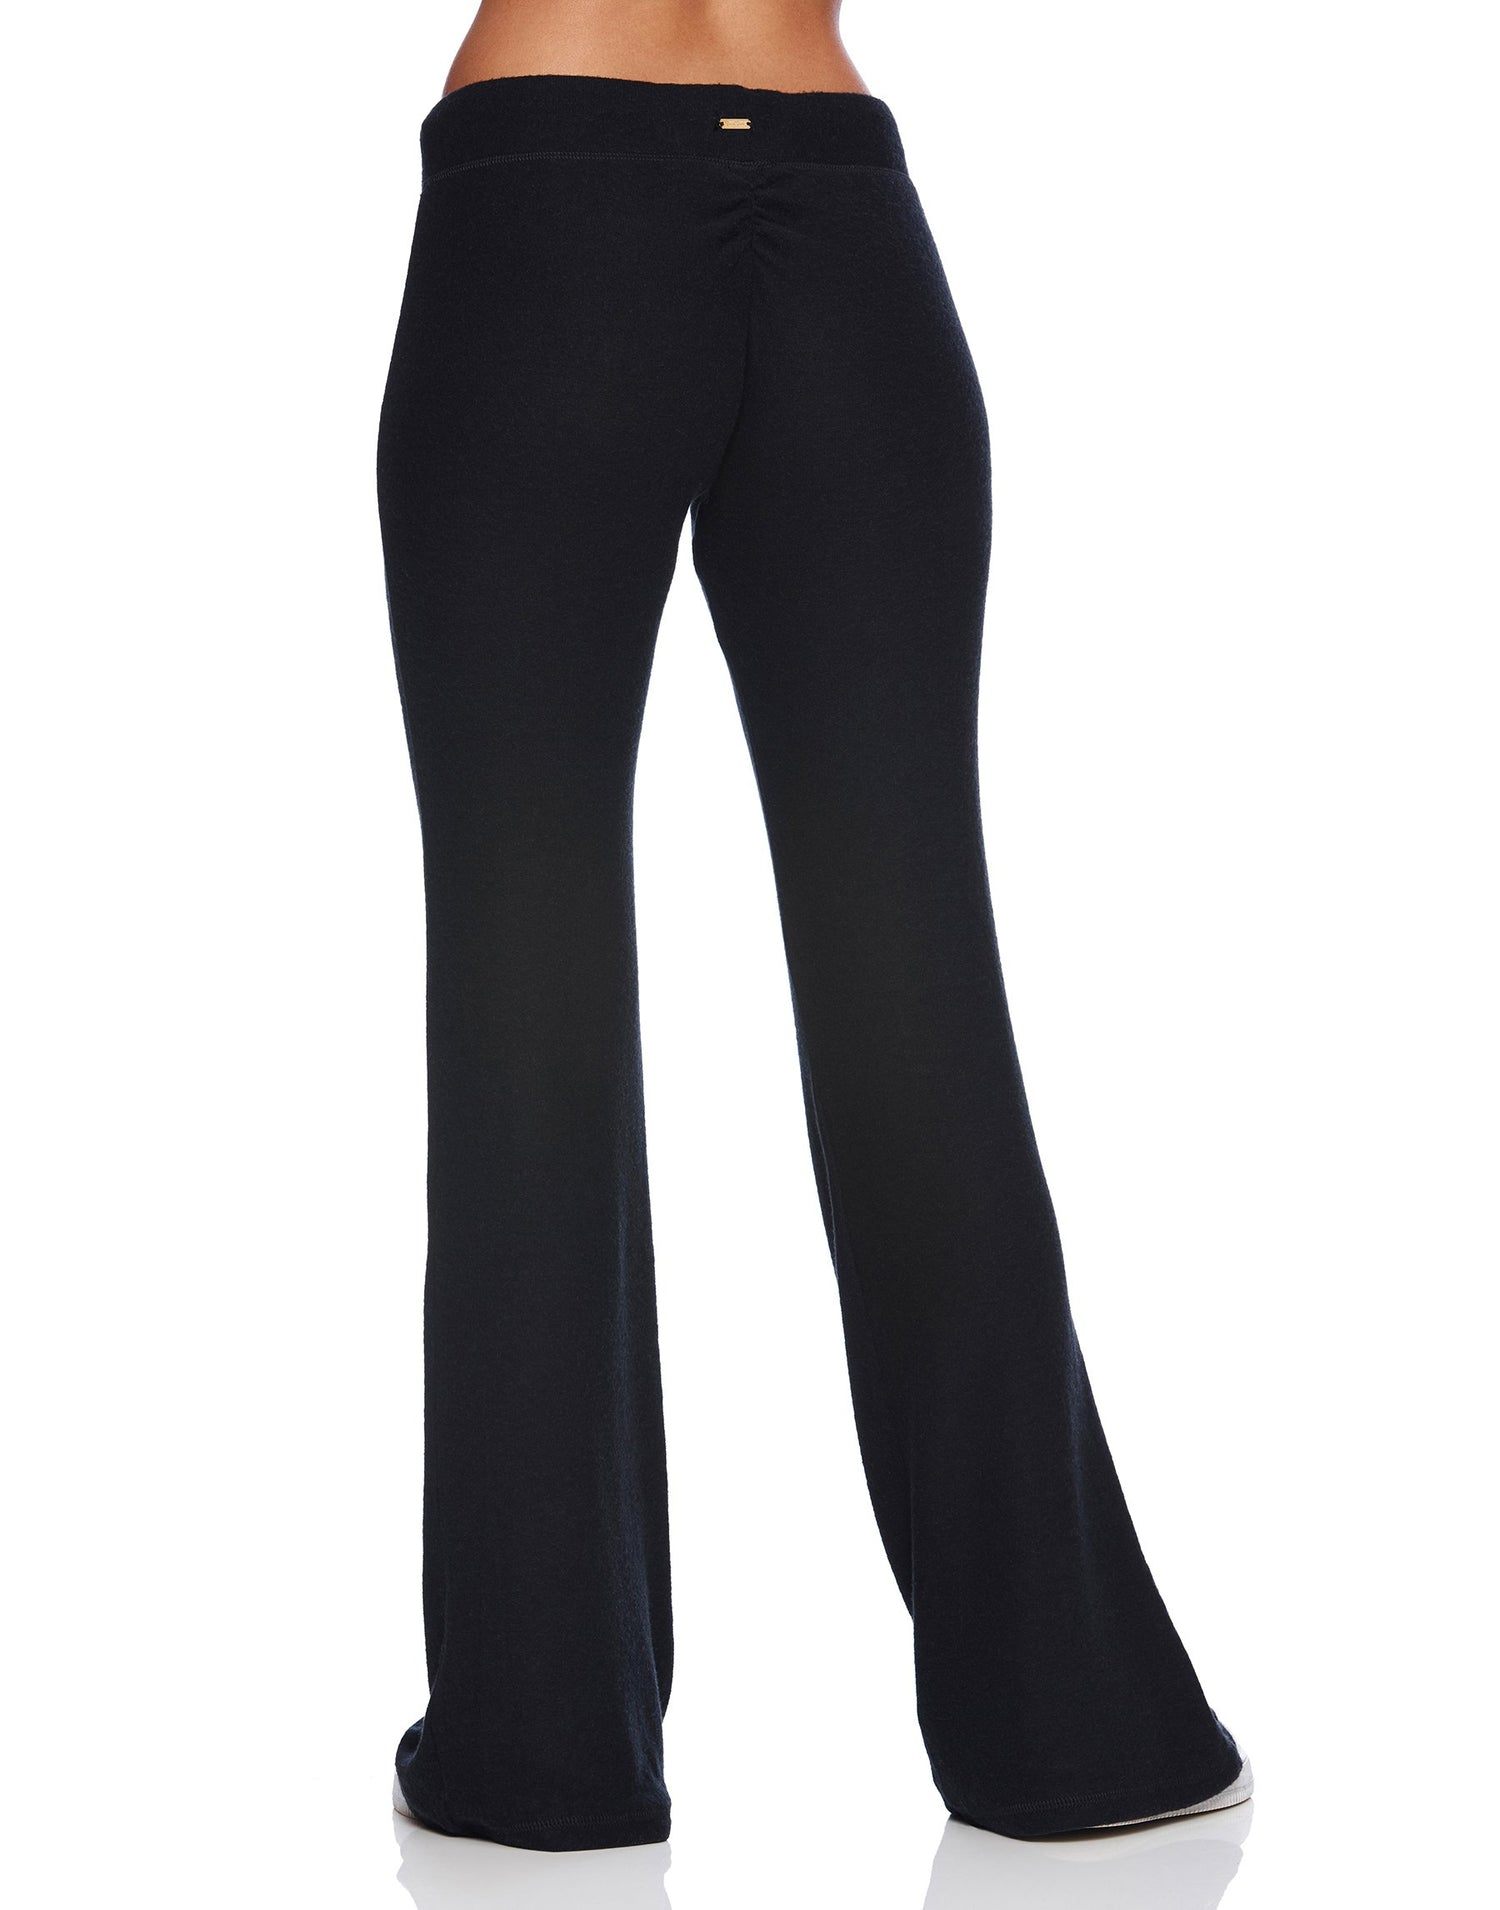 Josie Pant in Black - back view